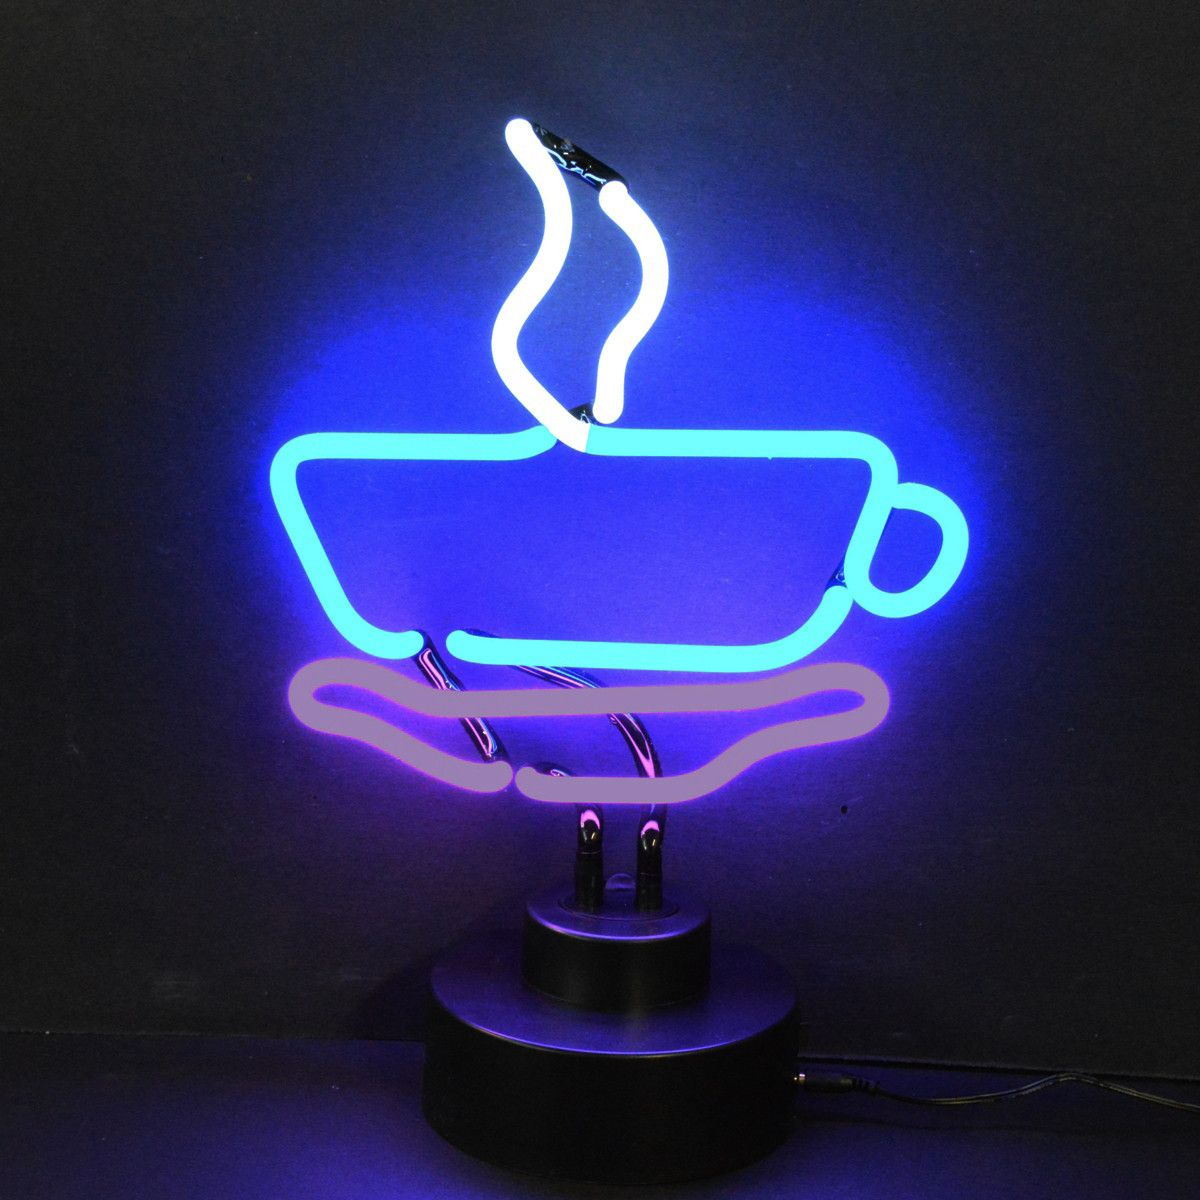 coffee cup neon sculpture luminous pinterest neon bilder und spr che. Black Bedroom Furniture Sets. Home Design Ideas